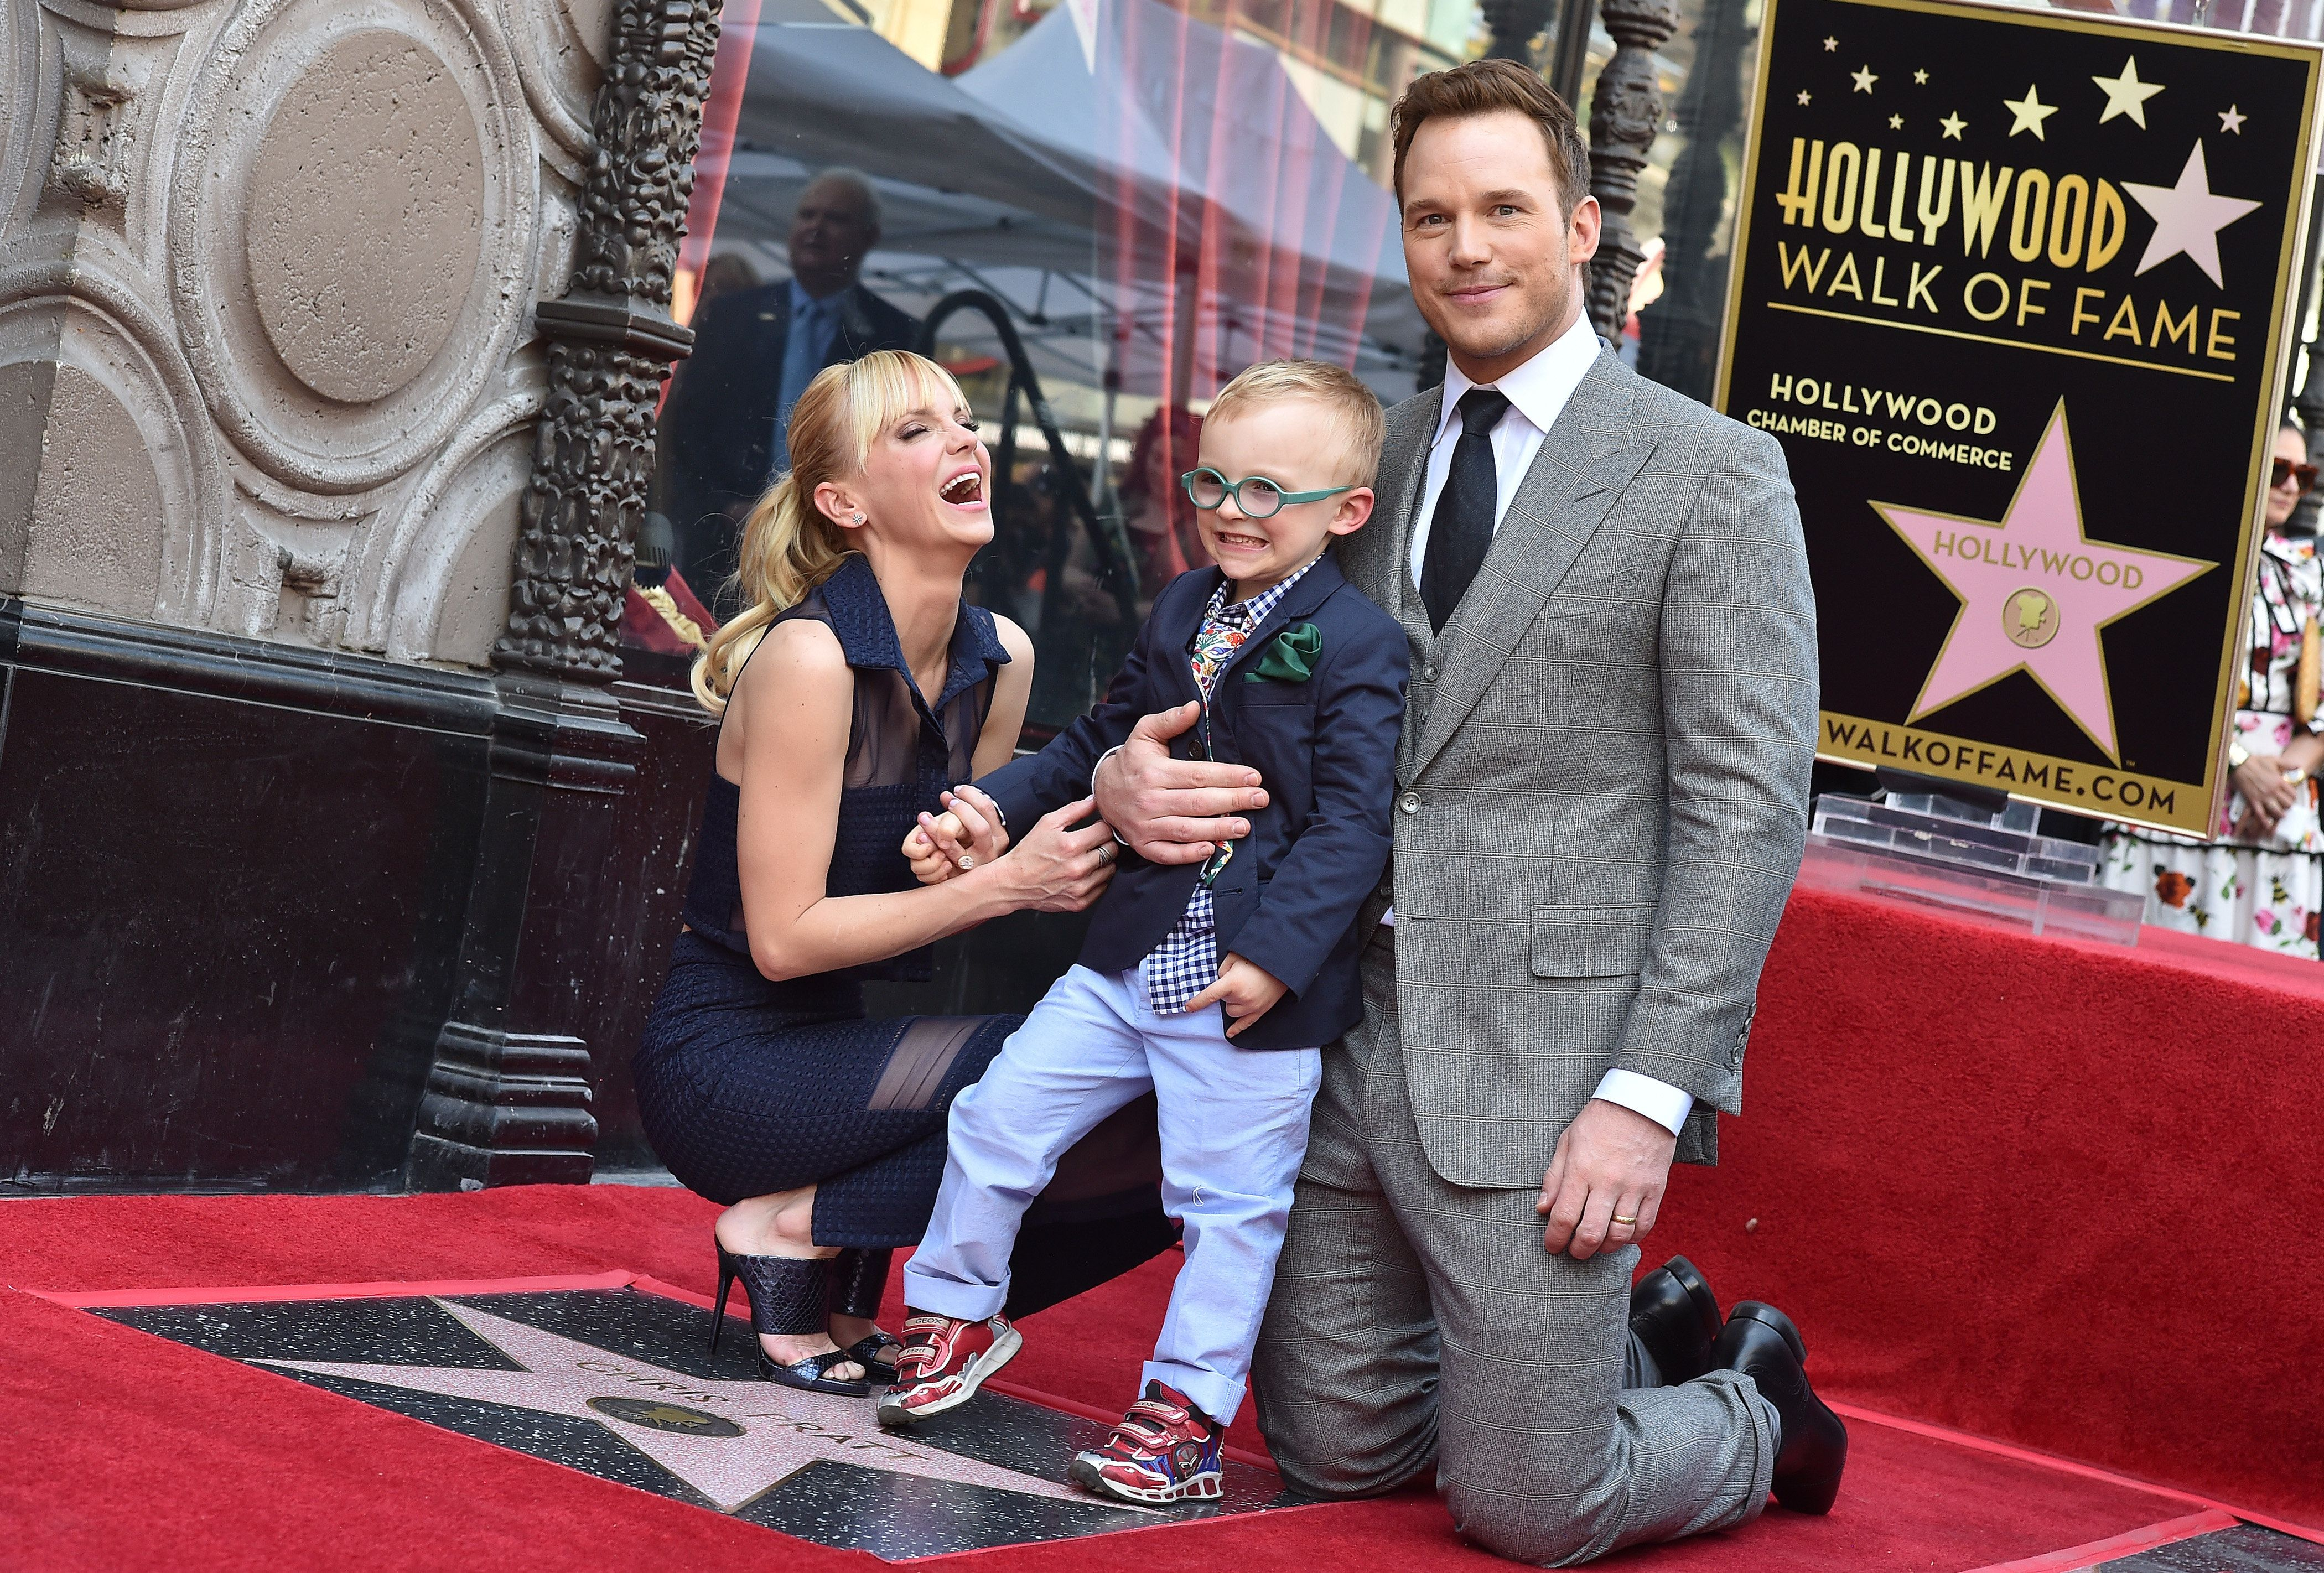 Chris Pratt and Anna Faris have a 4-year-old son named Jack.